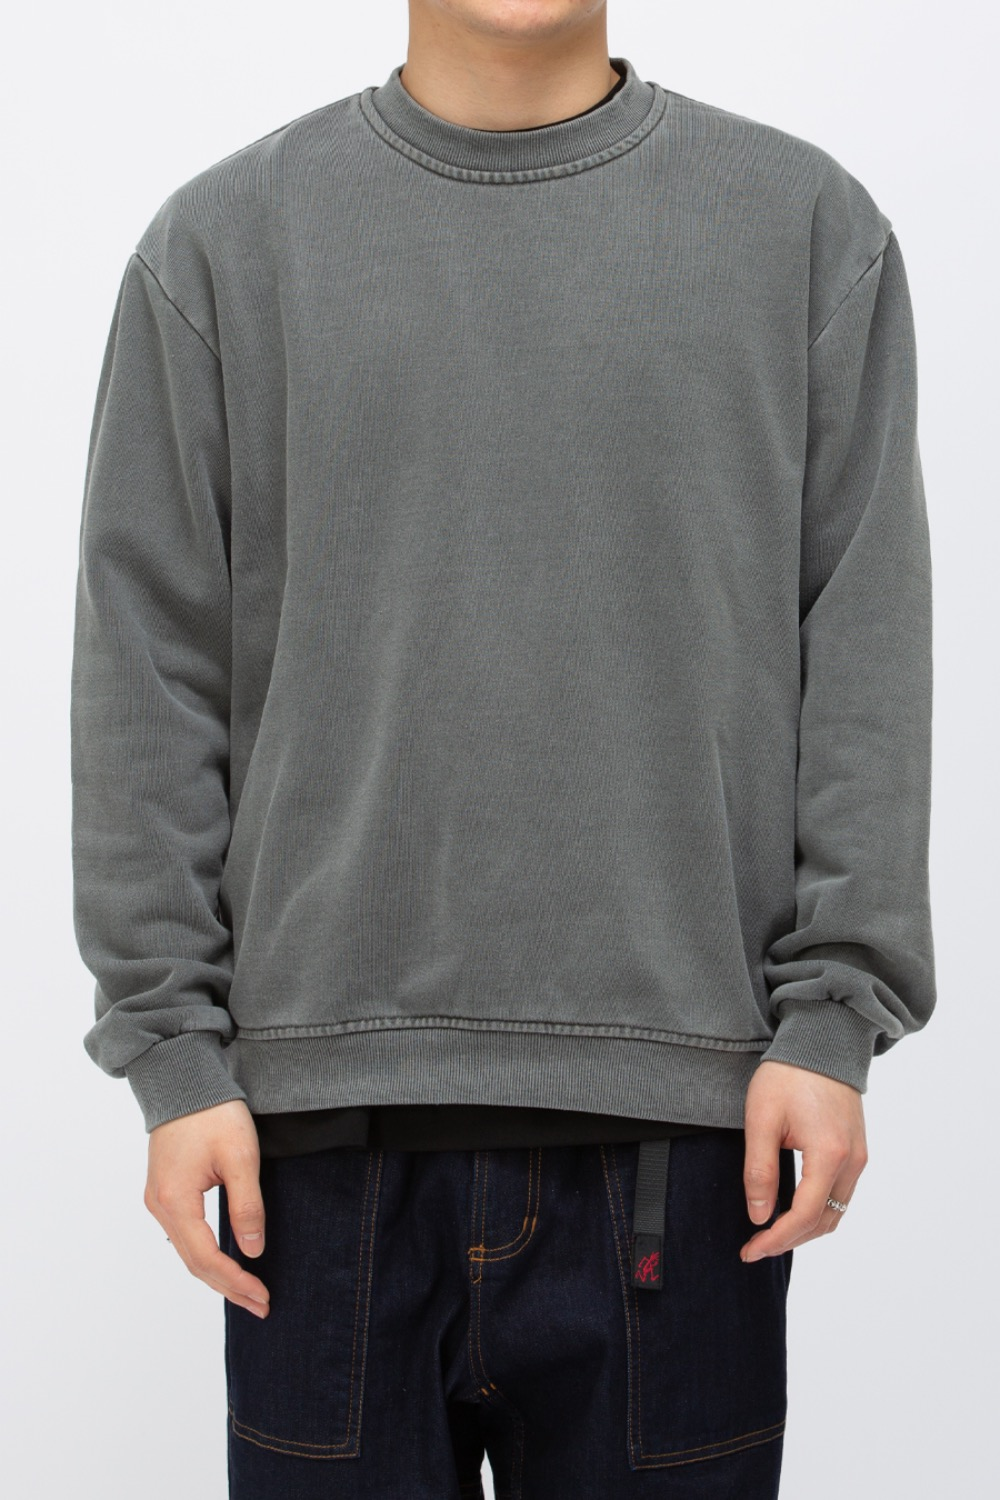 HEAVY WEIGHT OVERSIZE SWEATSHIRT WASHED(PREMIUM BASIC) CHARCOAL